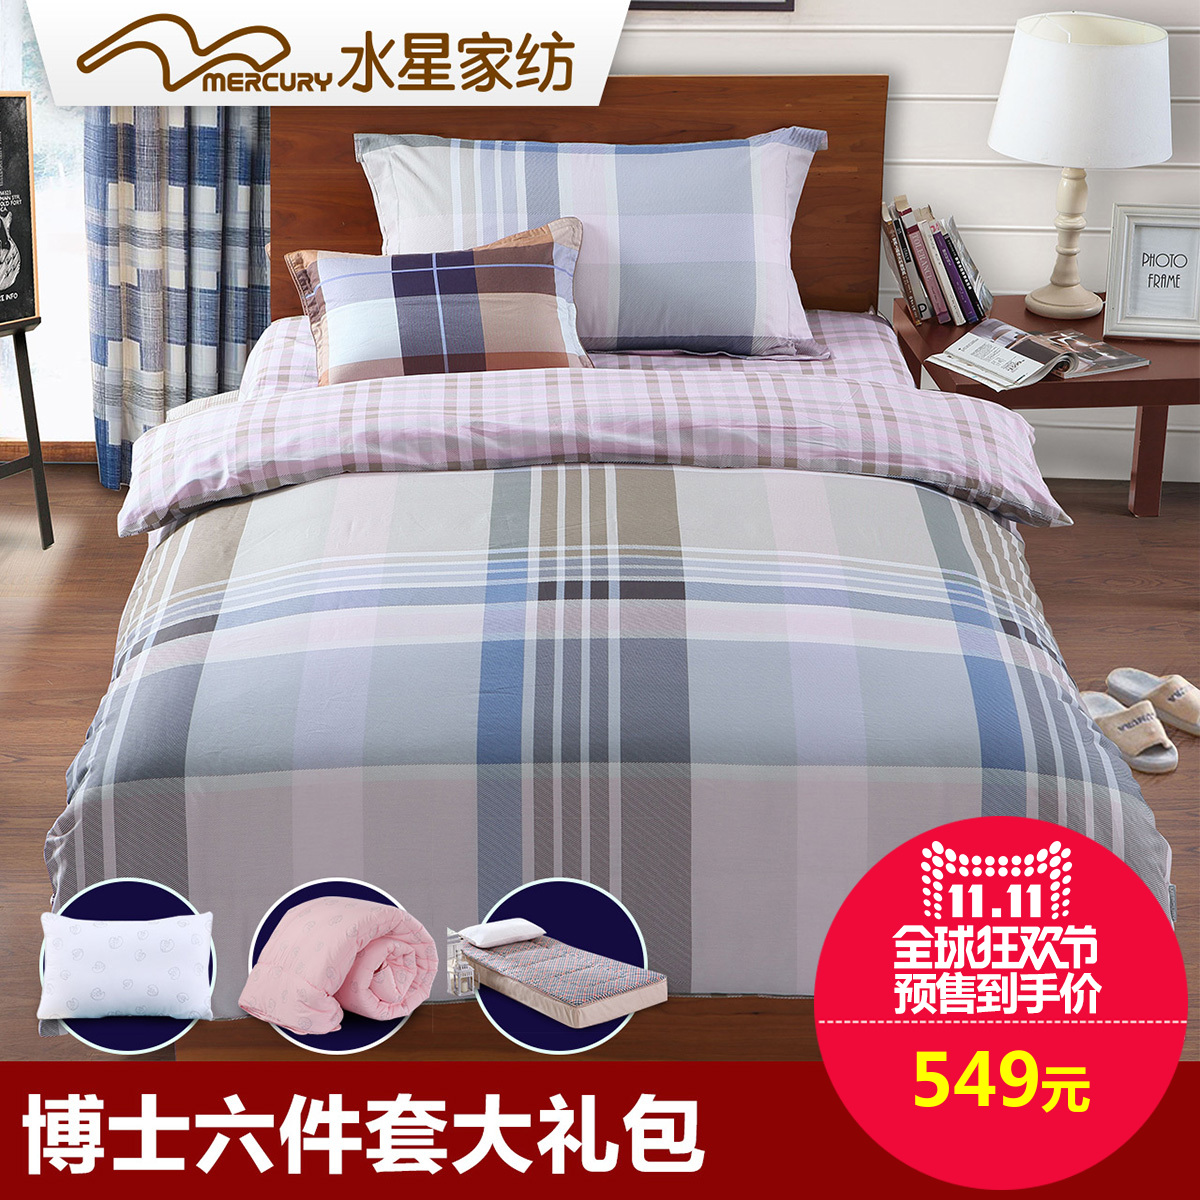 Dr. liu jiantao + mercury textile cotton is the core + pillow + mattress single combination package [sale]